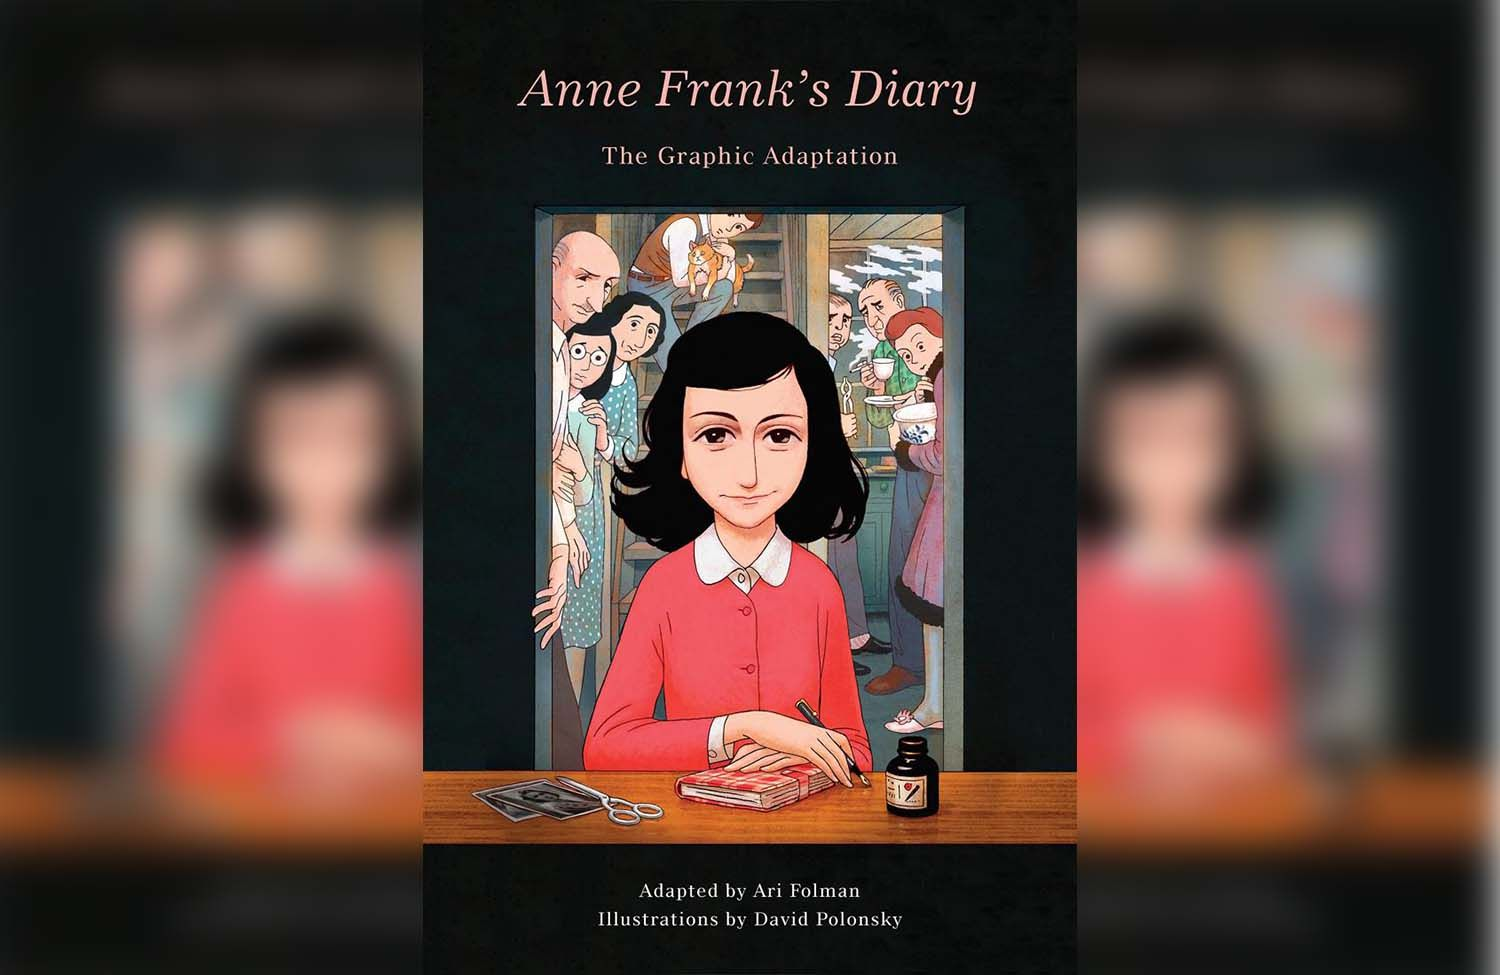 Anne Frank's Diary The Graphic Adaptation 1